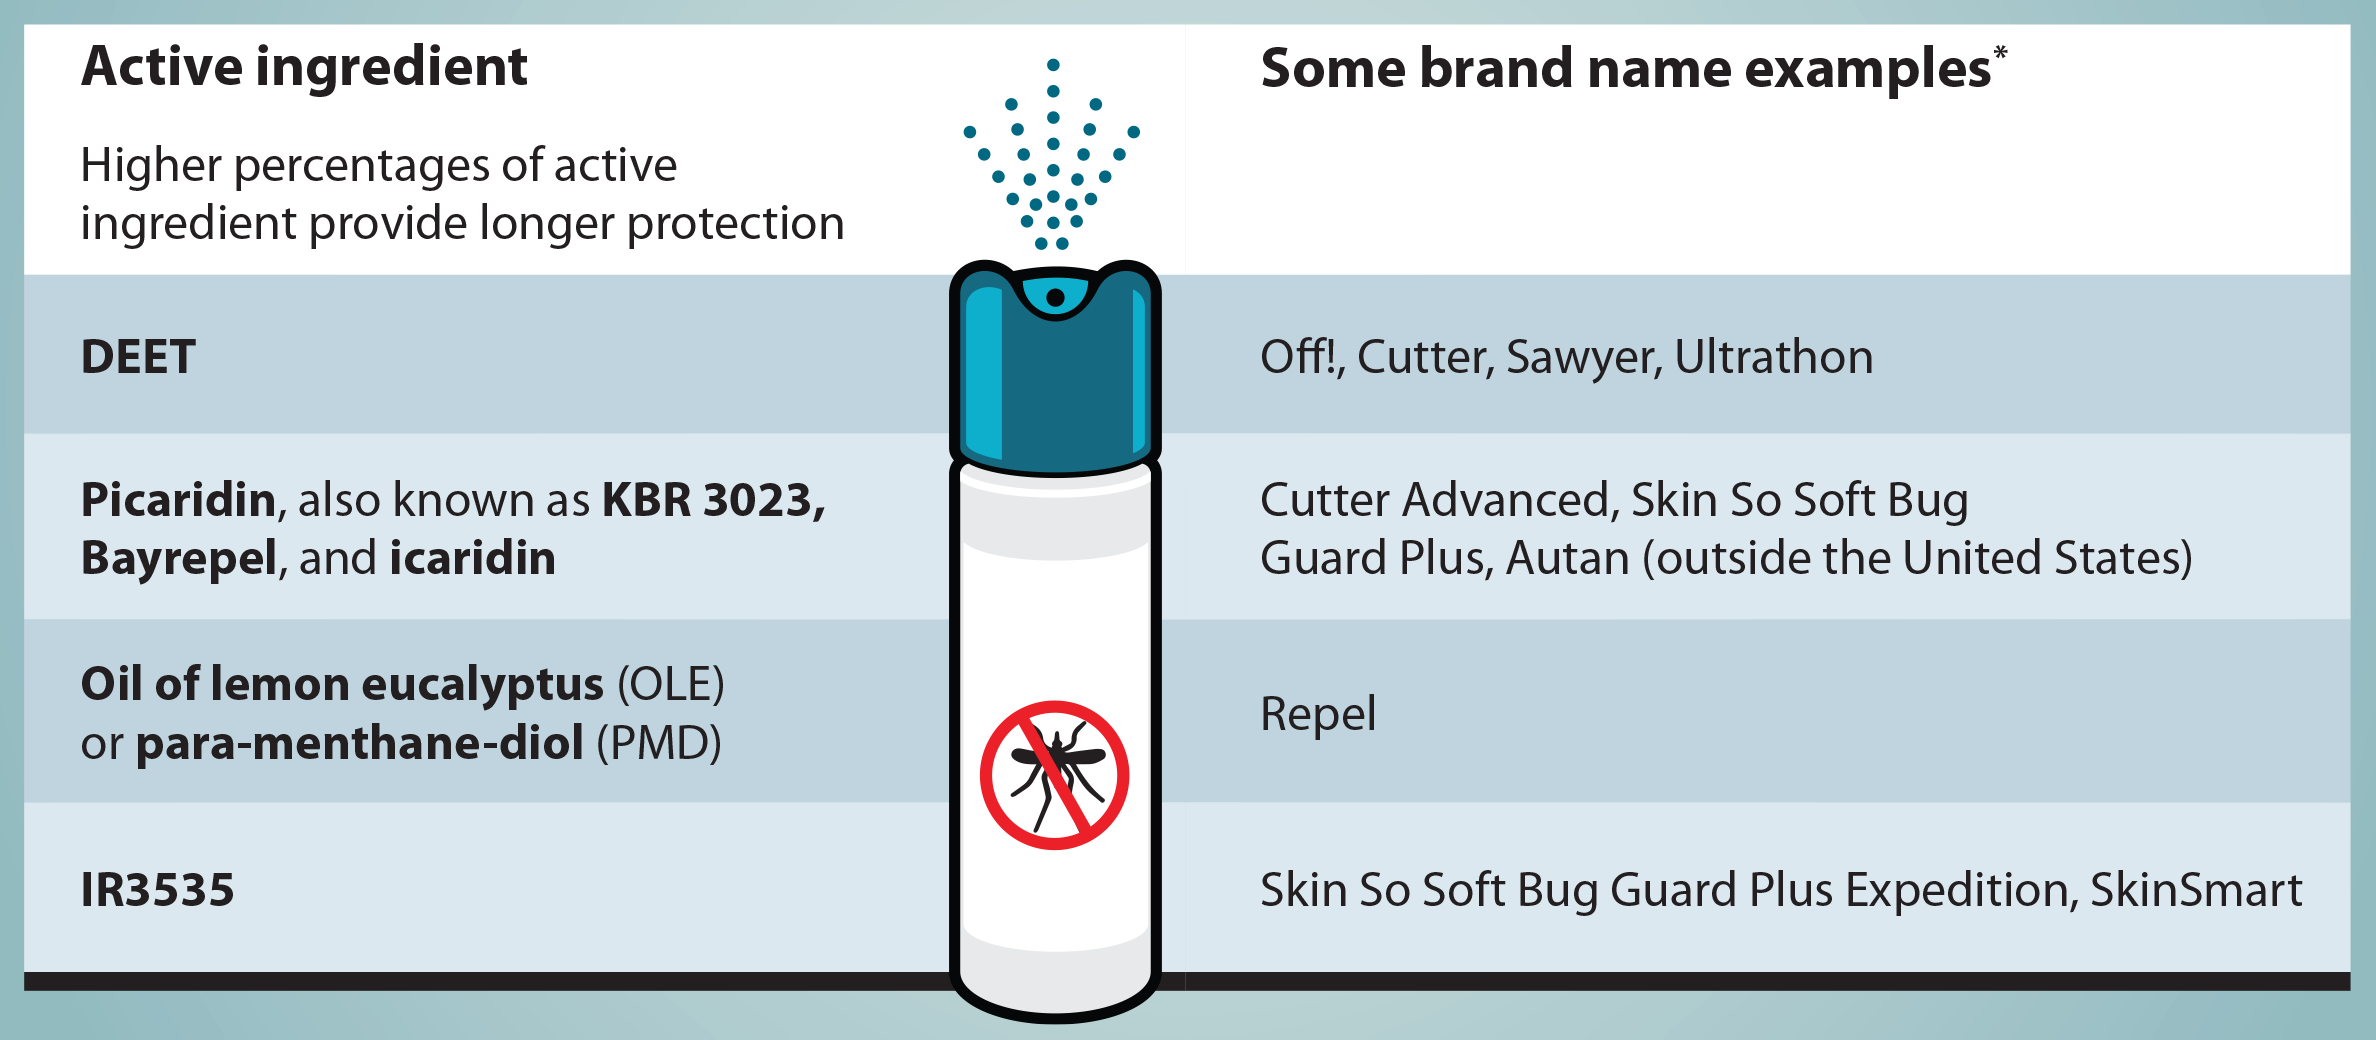 insect-repellent-brand-examples